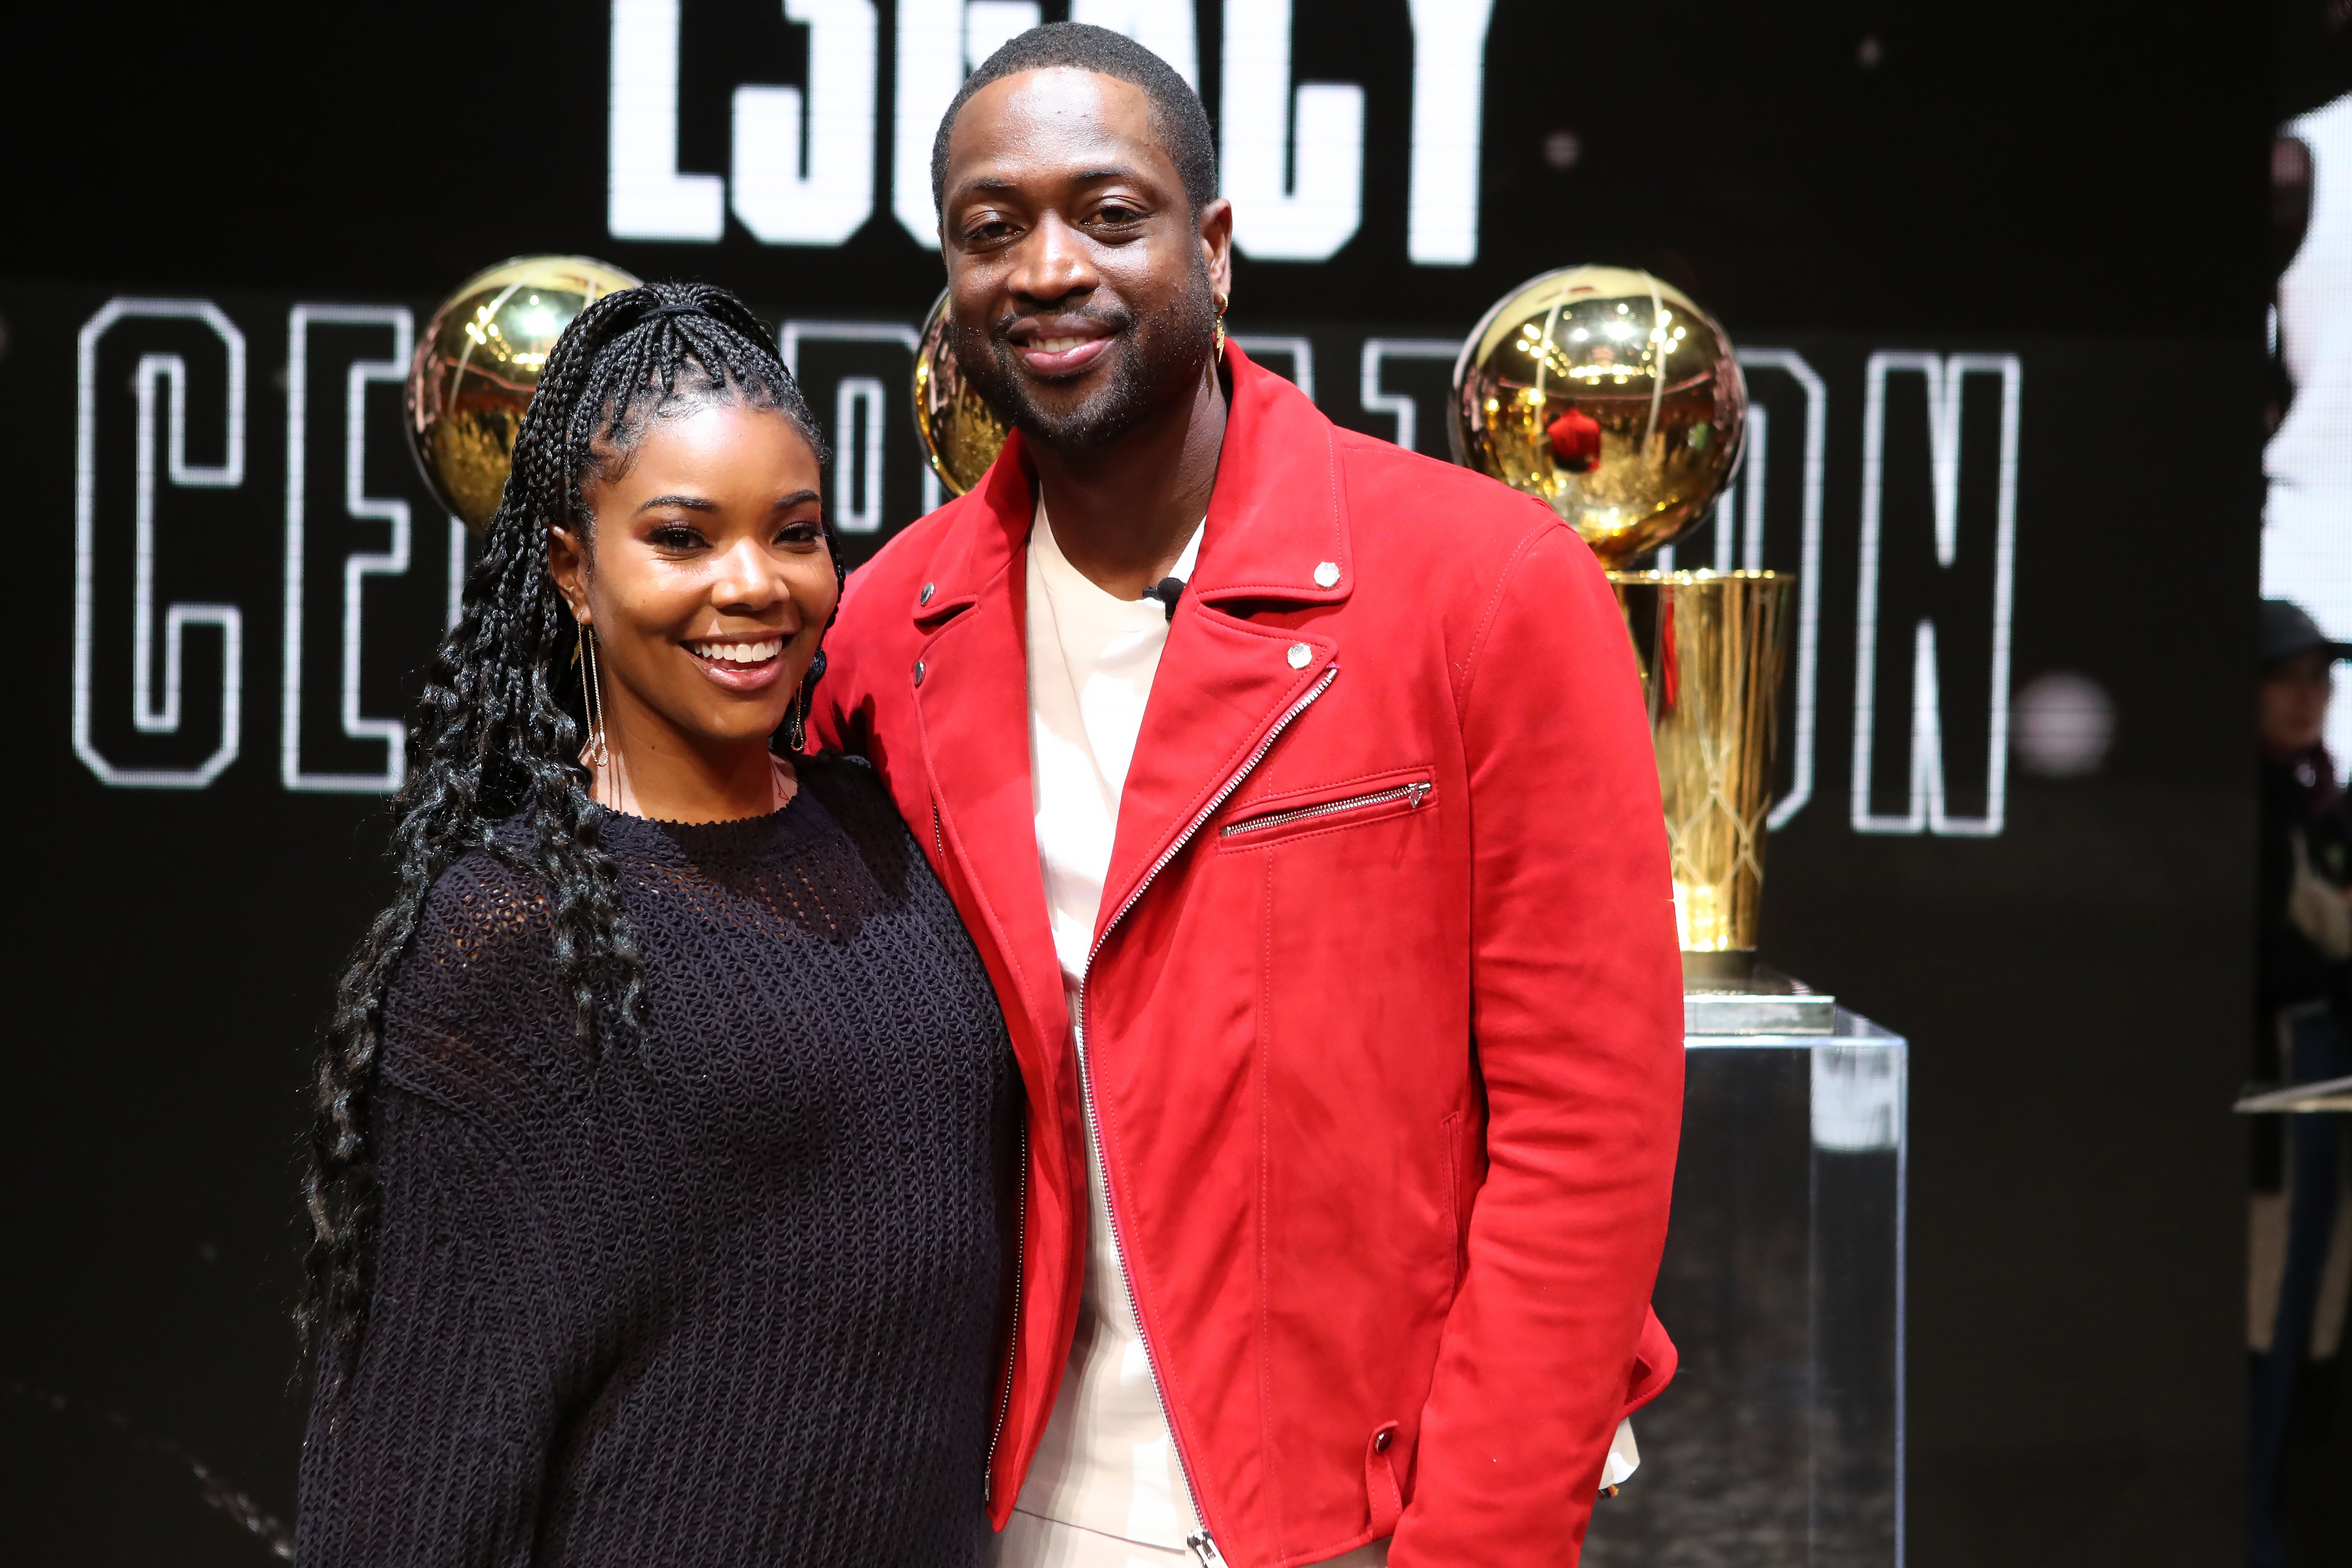 Dwyane Wade and Gabrielle Union attend the Jersey Retirement Flashback Event on February 21, 2020, in Miami, Florida.   Source: Getty Images.